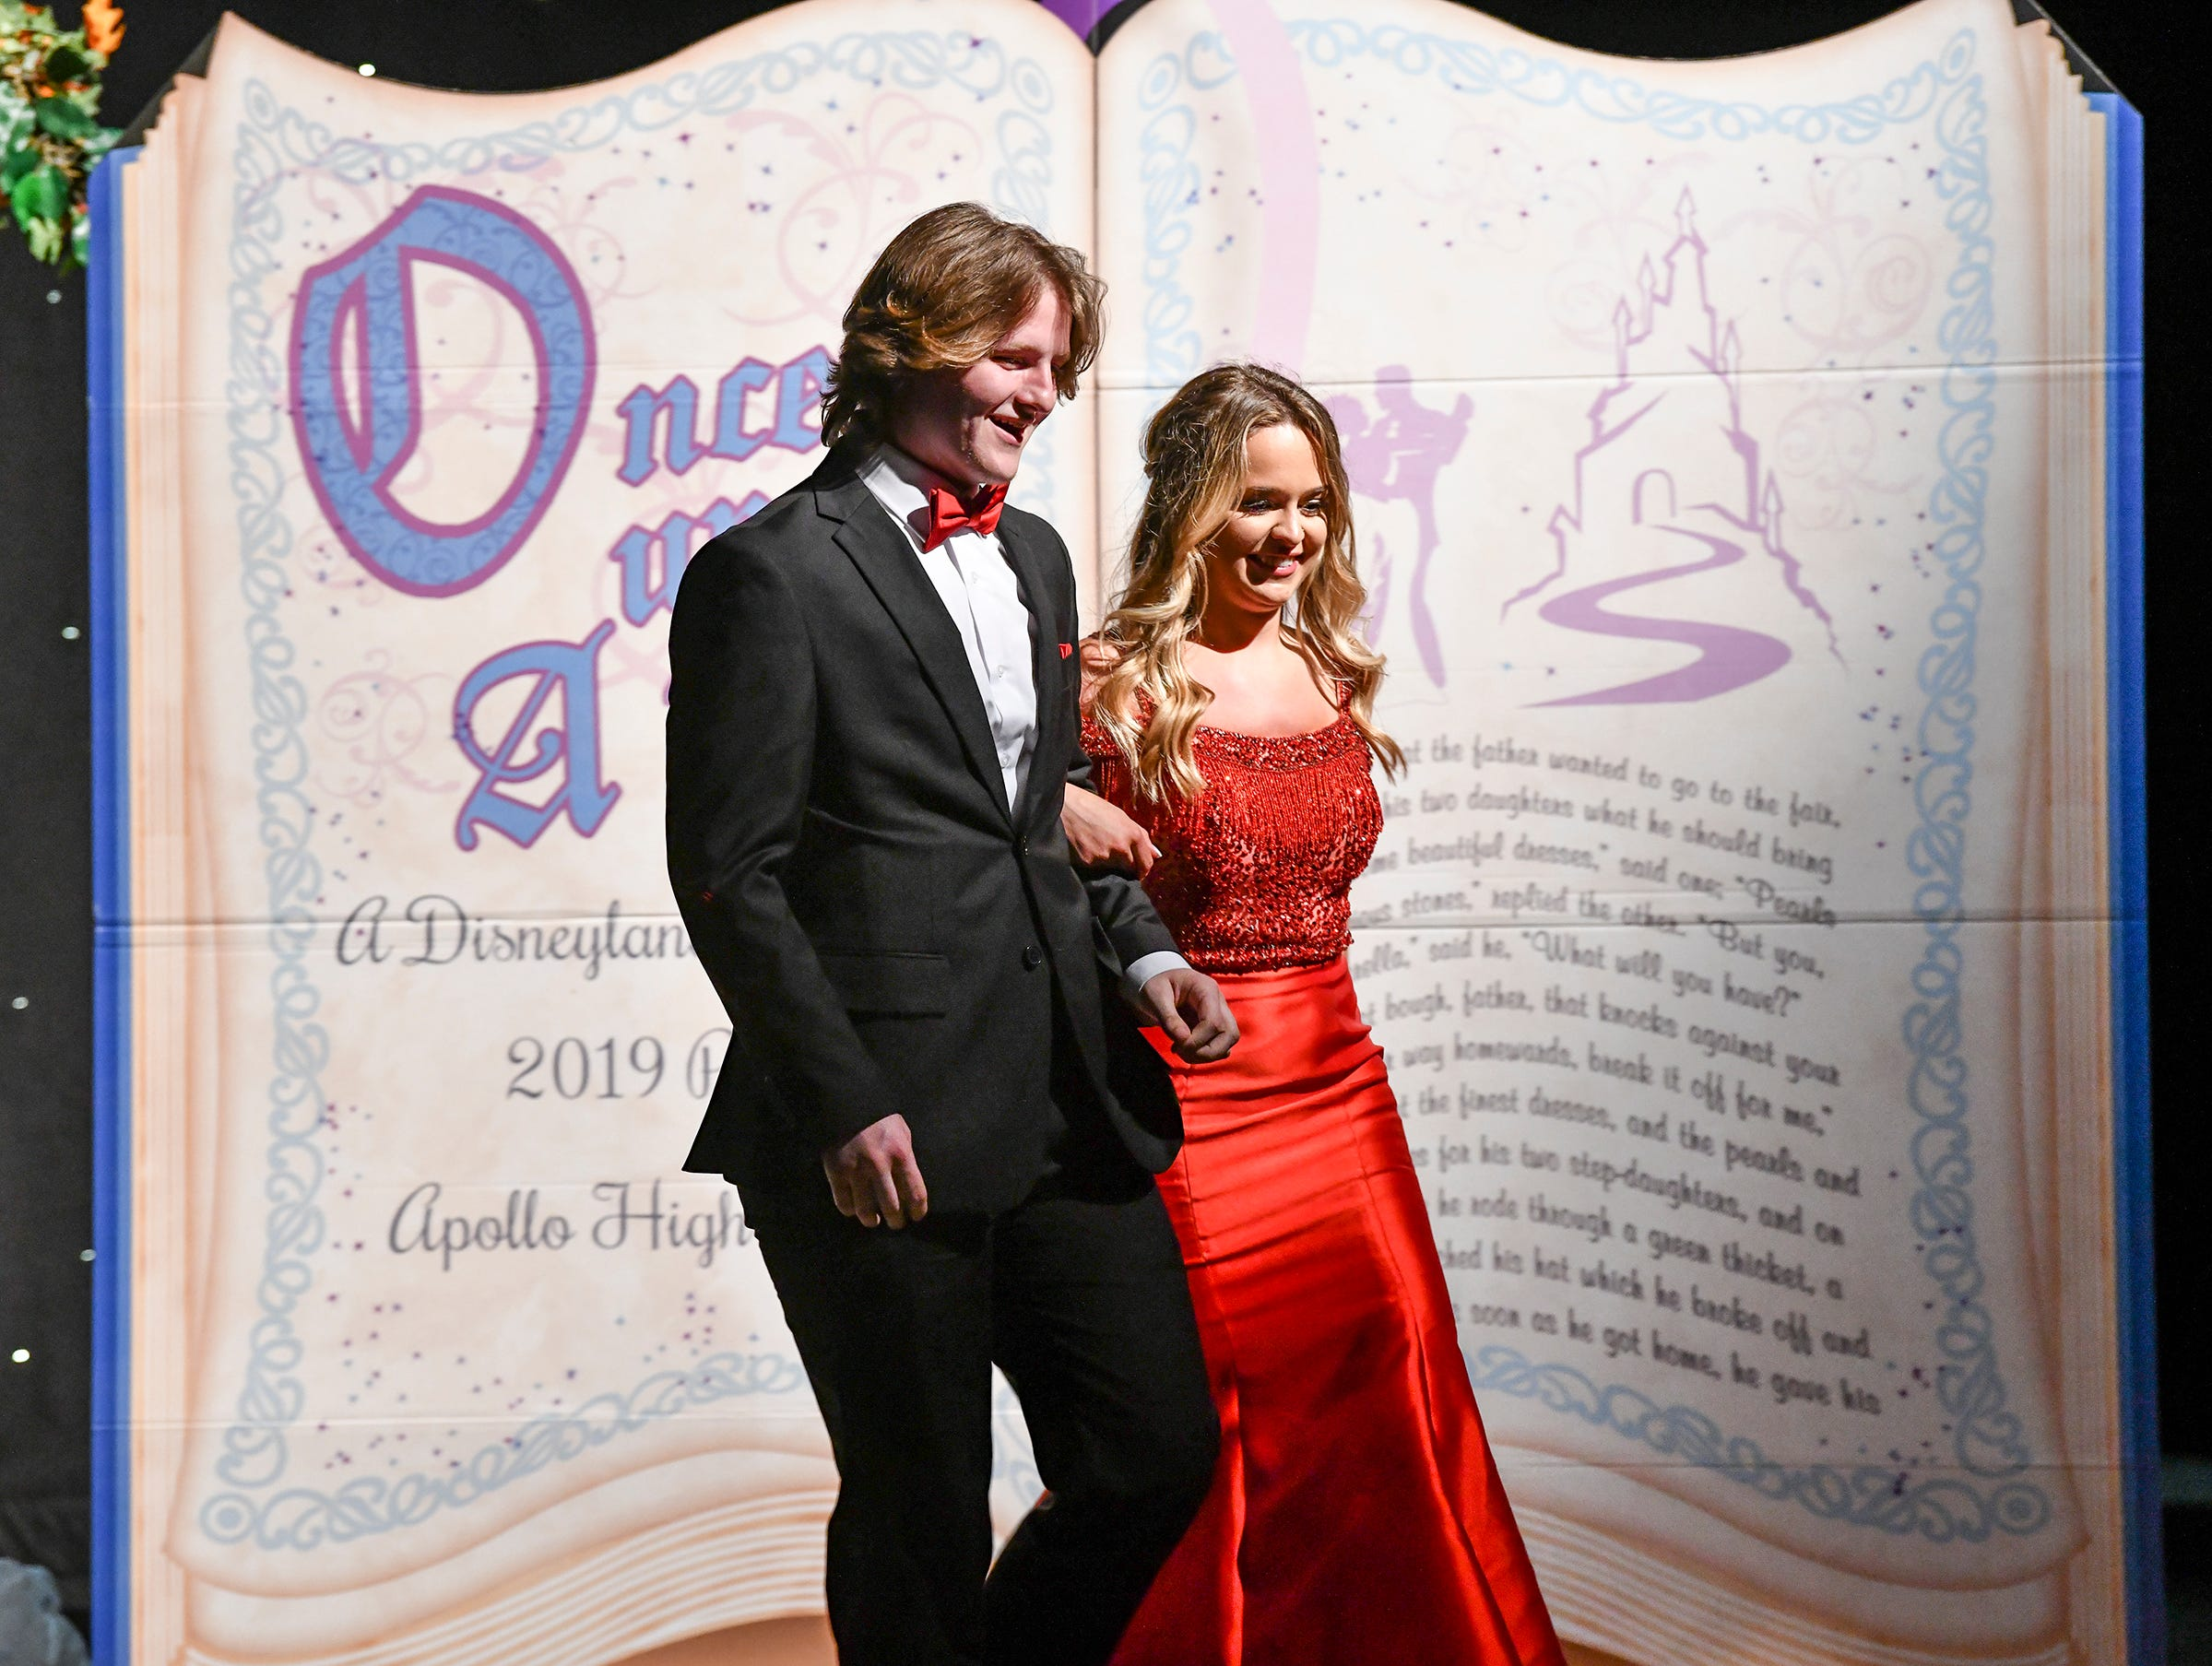 A couple makes their way across Disney-themed stage decorations during prom grand march Saturday, May 11, at Apollo High School in St. Cloud.